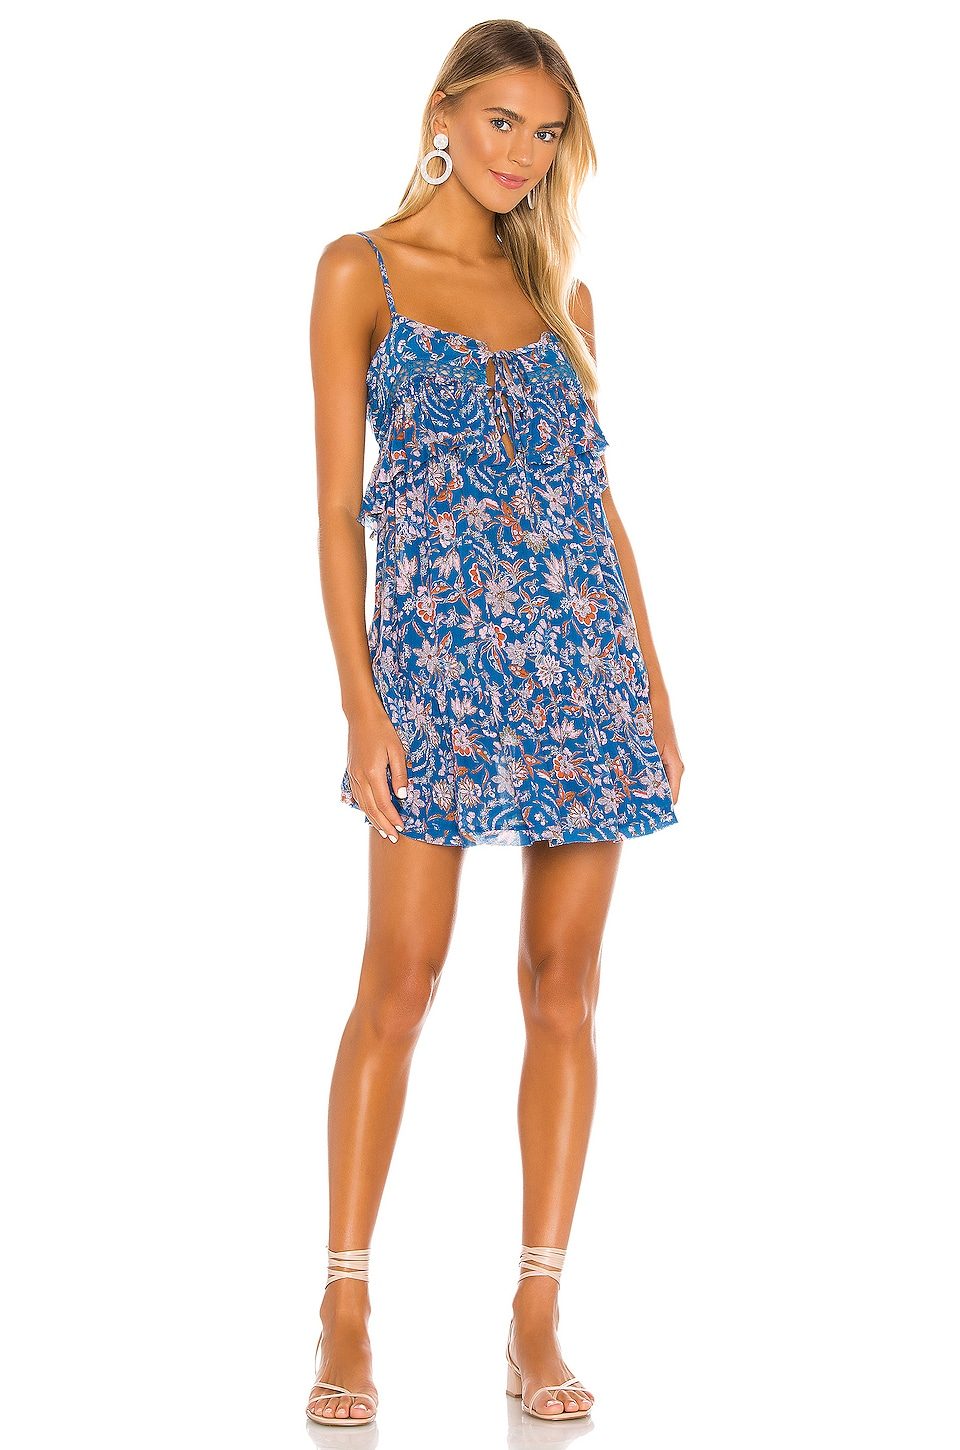 Take Me With You Ruffle Dress             Free People                                                                                                       CA$ 139.34 1